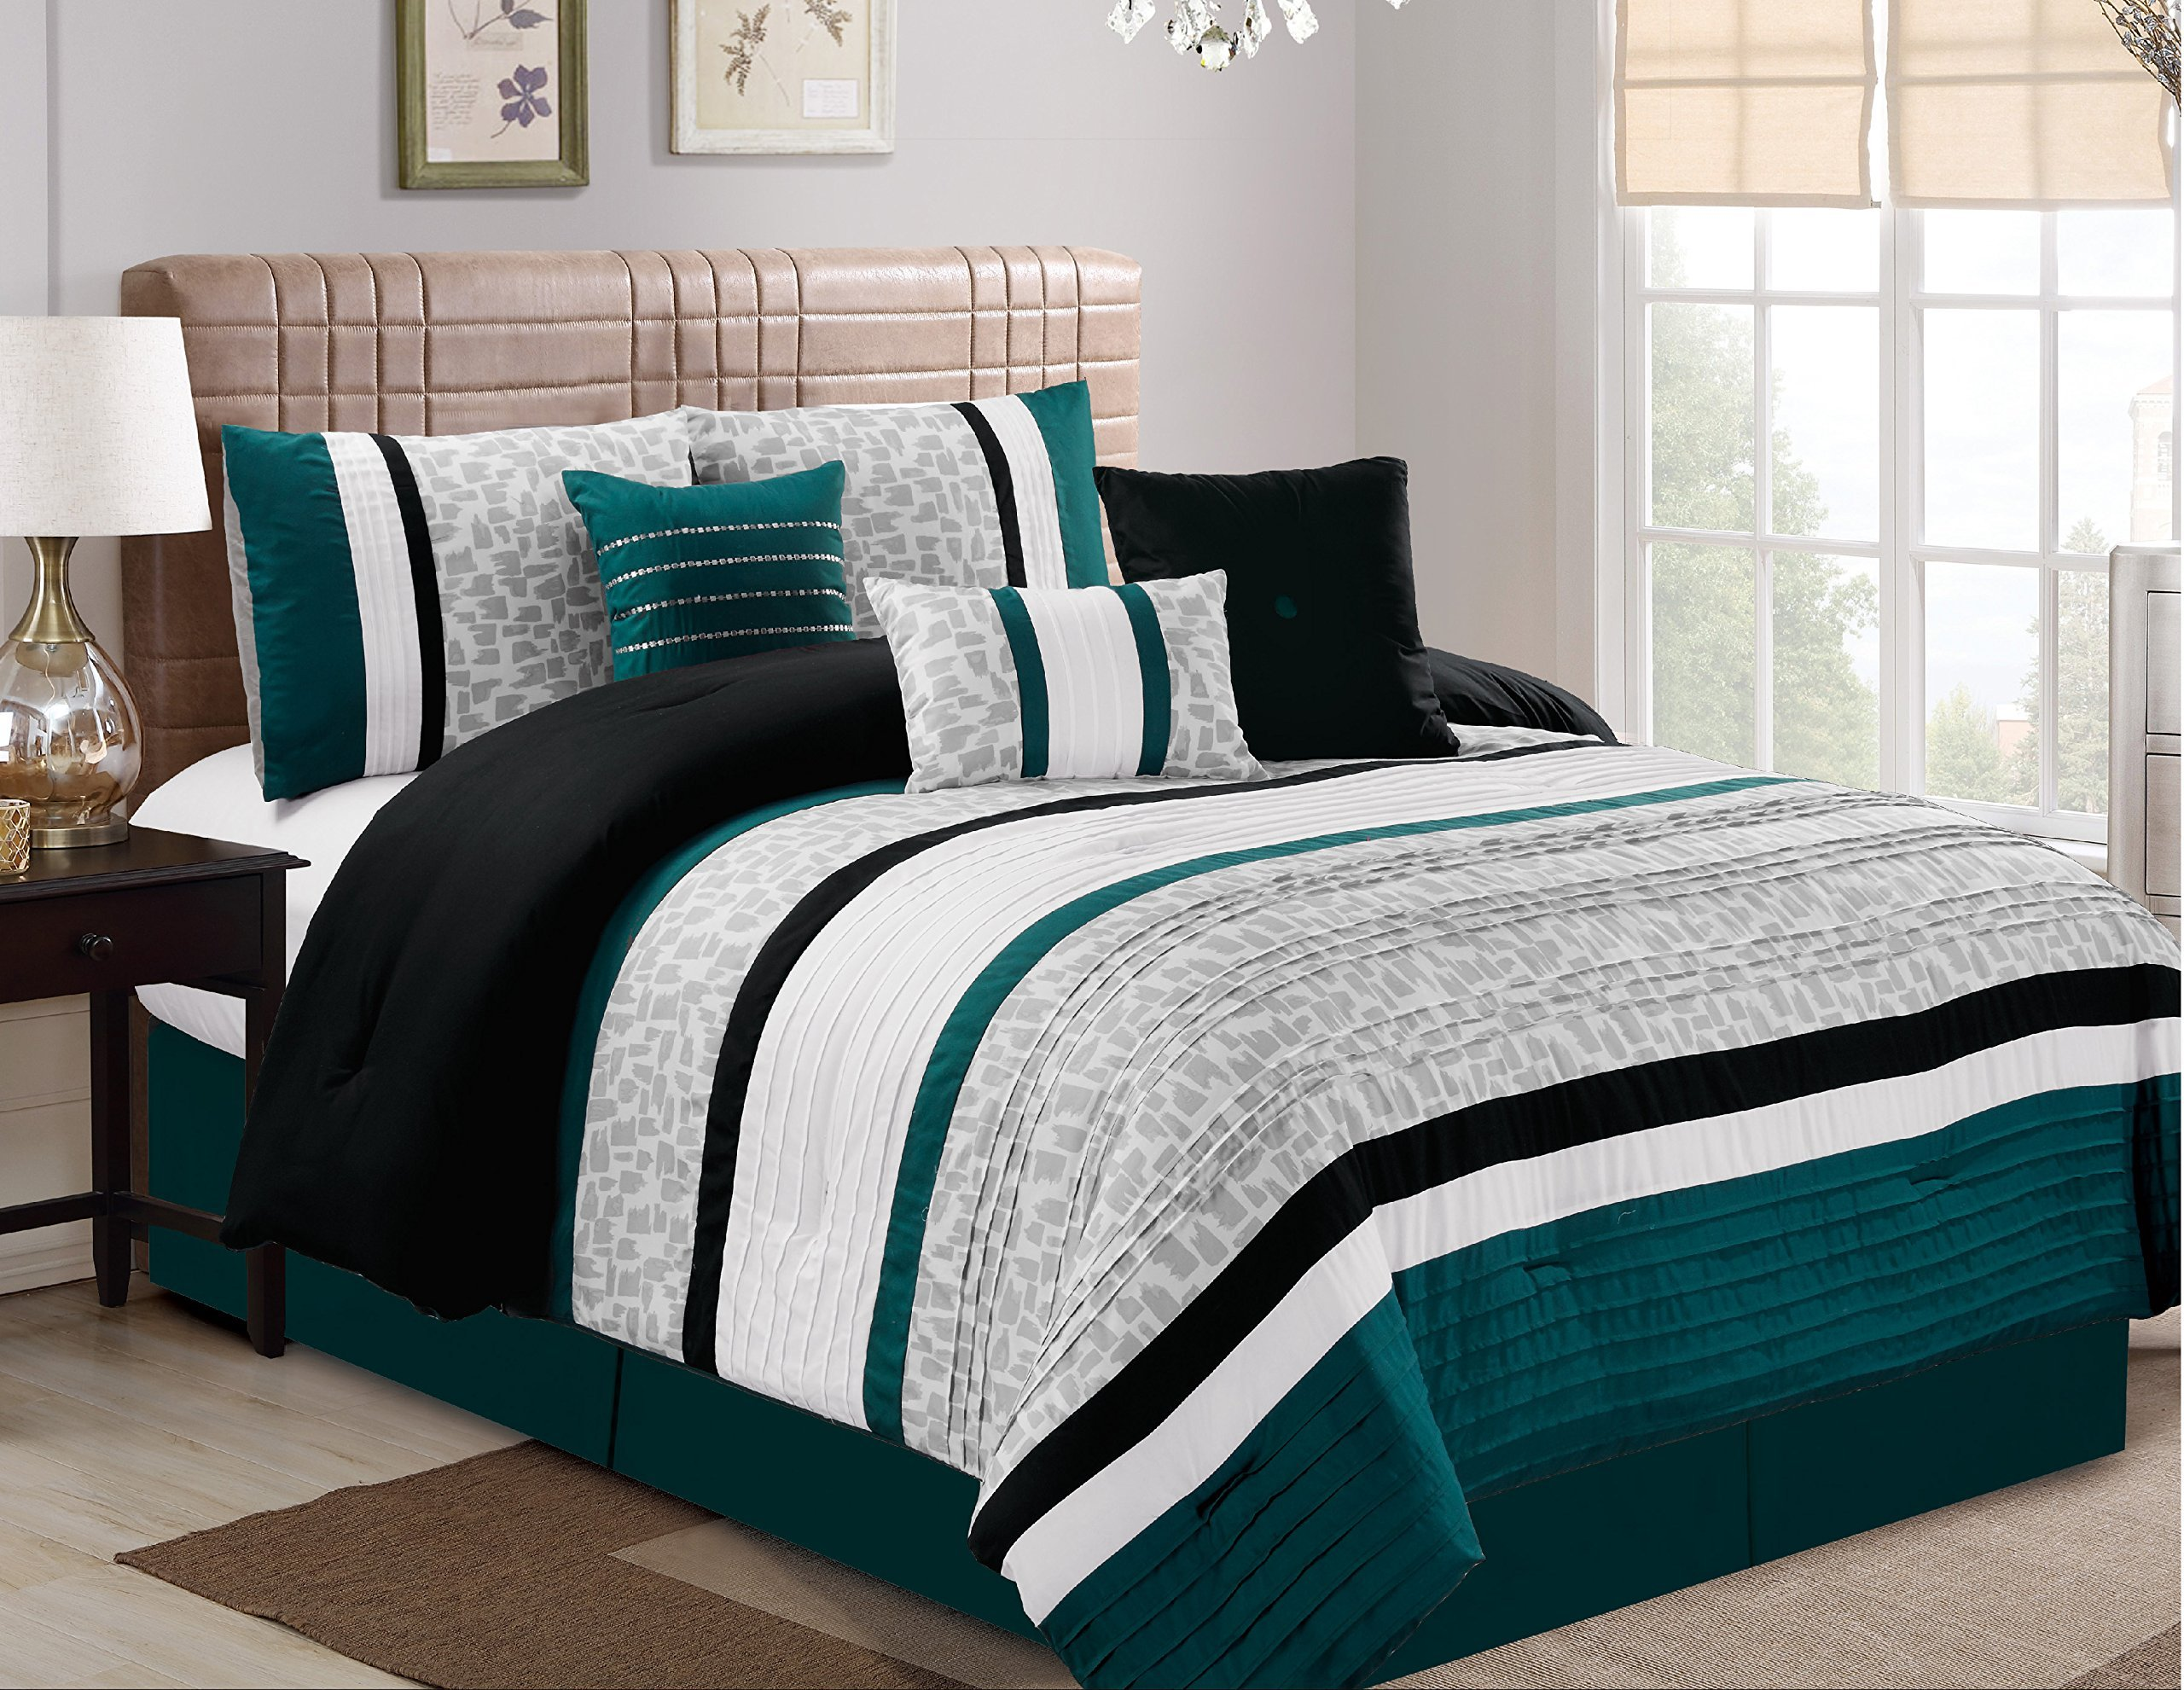 Luxlen 7 Piece Modern  Bed / Comforter in a Bag, King,  Teal